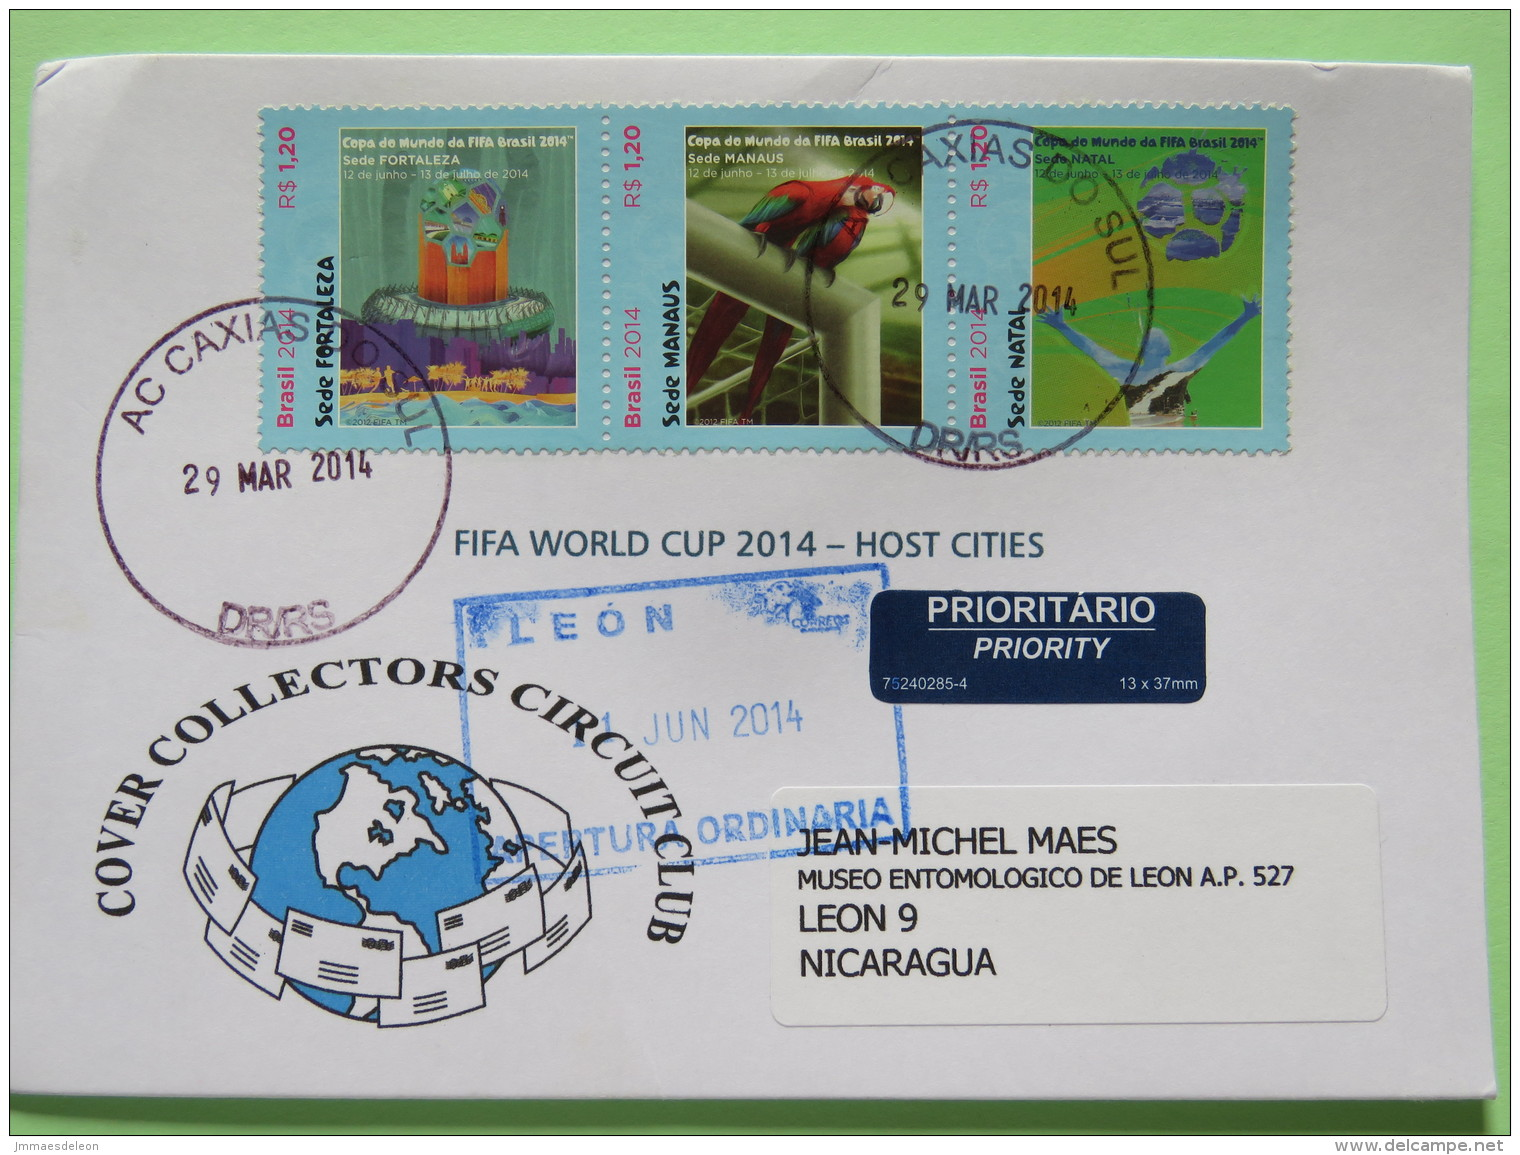 Brazil 2014 Cover Caxias Do Sul To Nicaragua - Football Soccer FIFA - Red Macaw Parrot - Brazil